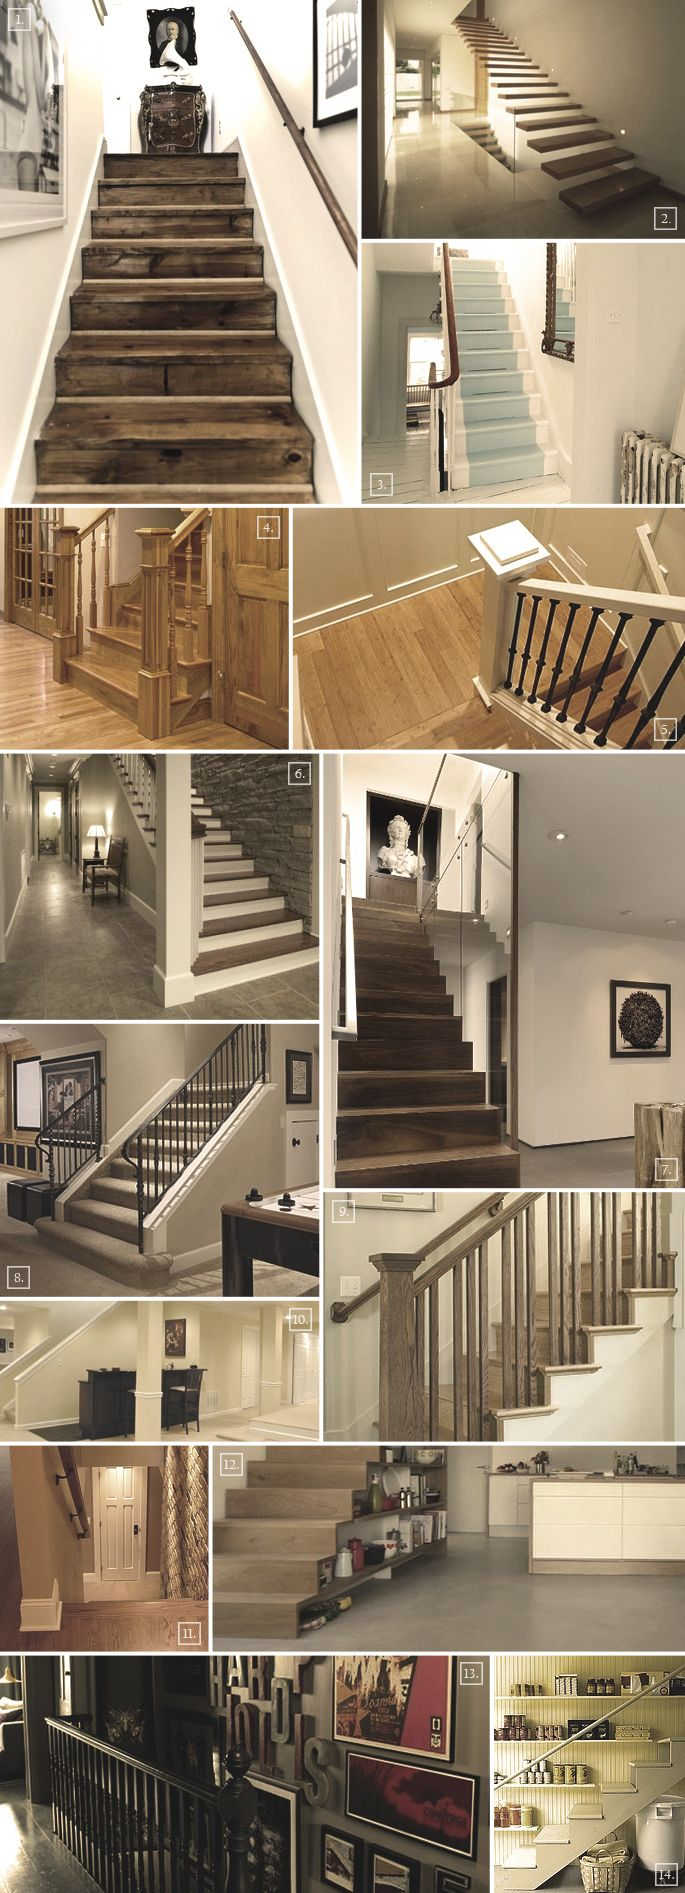 Basement Stairs Design: Ideas For A Basement Staircase: Designs, Railings, Storage